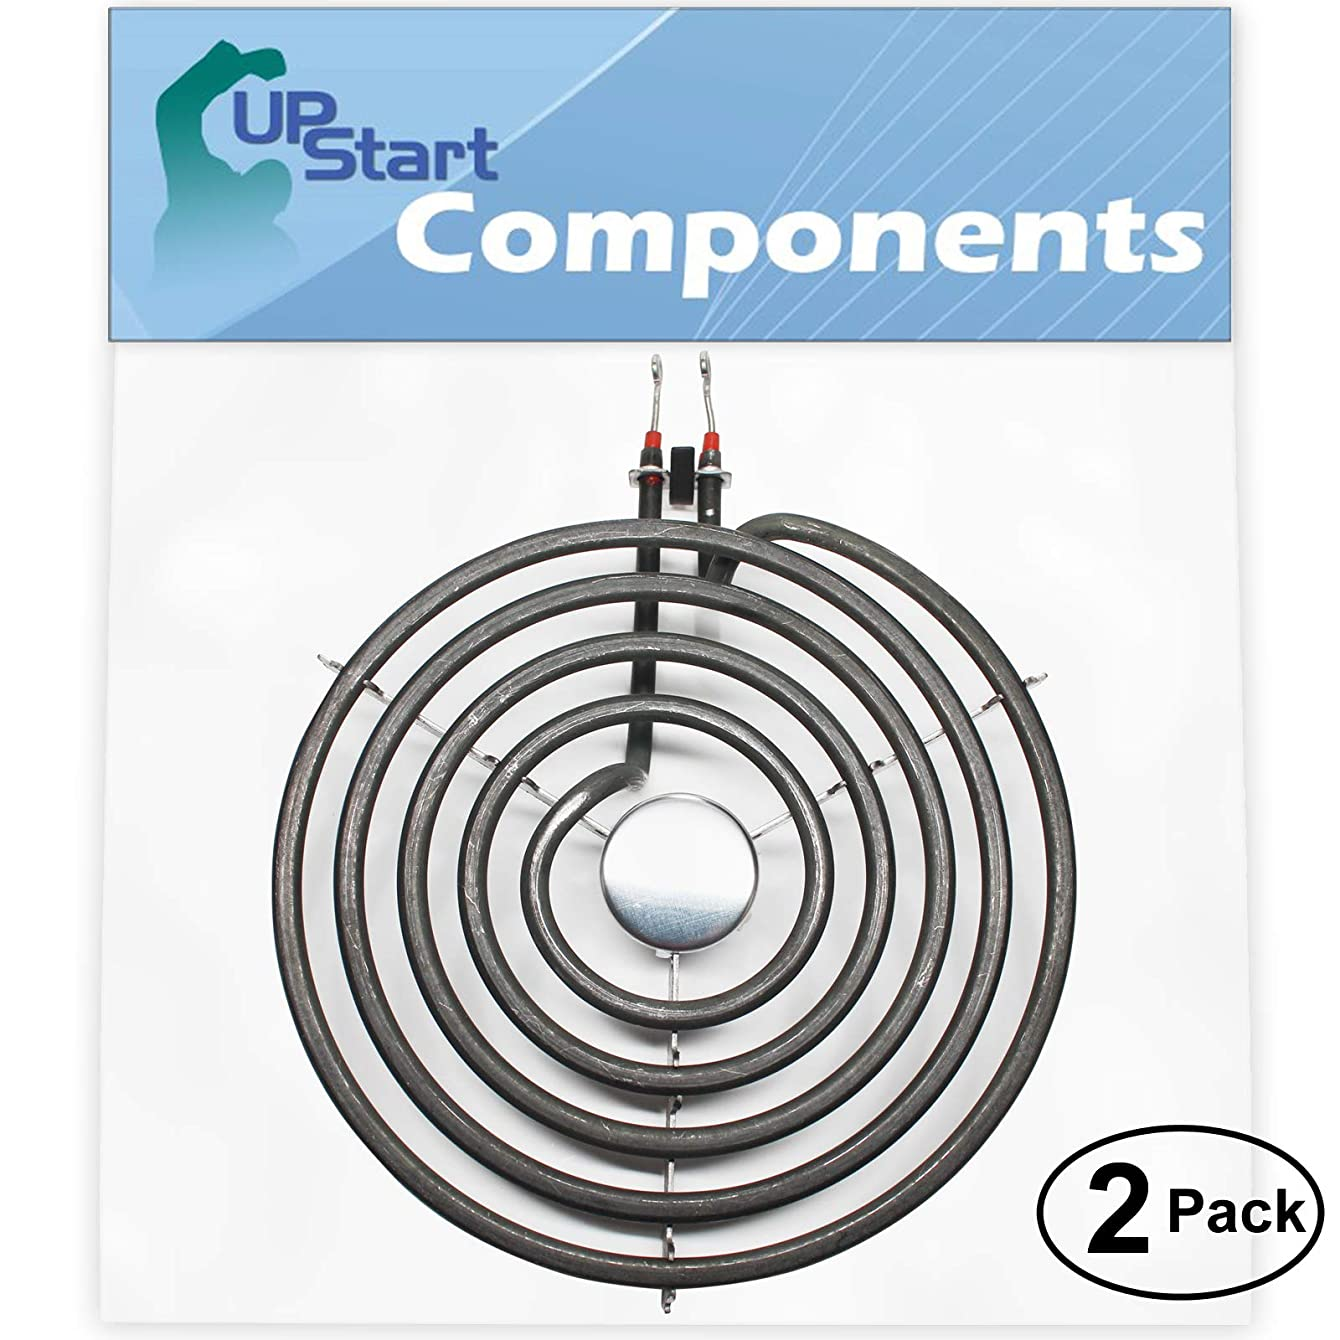 2-Pack Replacement Whirlpool RF315PXGW1 8 inch 5 Turns Surface Burner Element - Compatible Whirlpool 9761345 Heating Element for Range, Stove & Cooktop